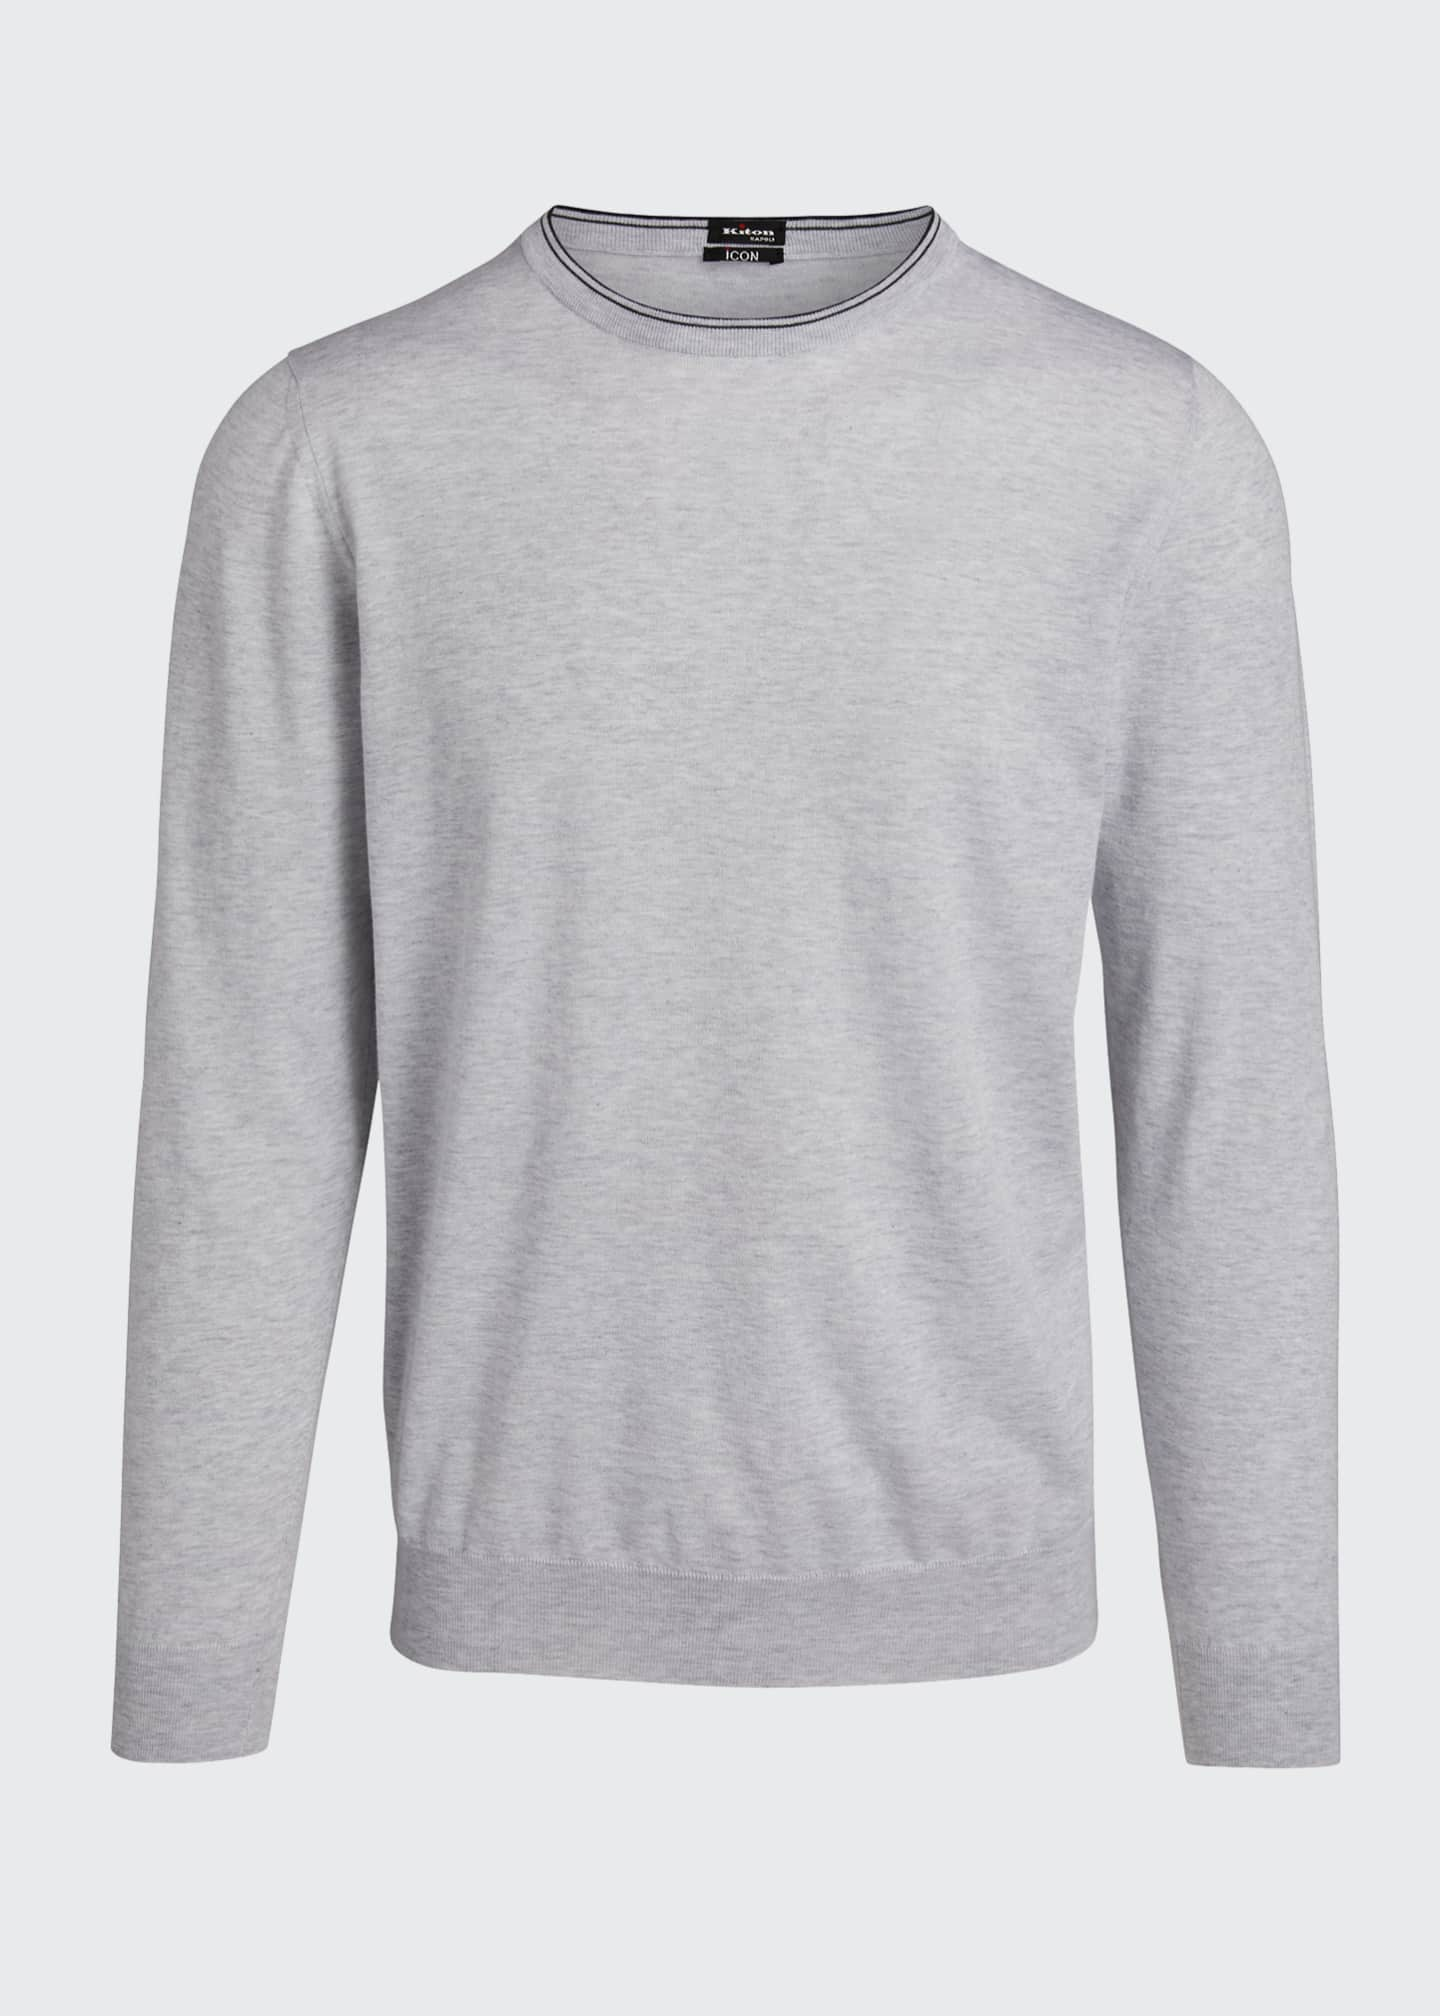 Image 5 of 5: Men's Crewneck Cotton Sweater